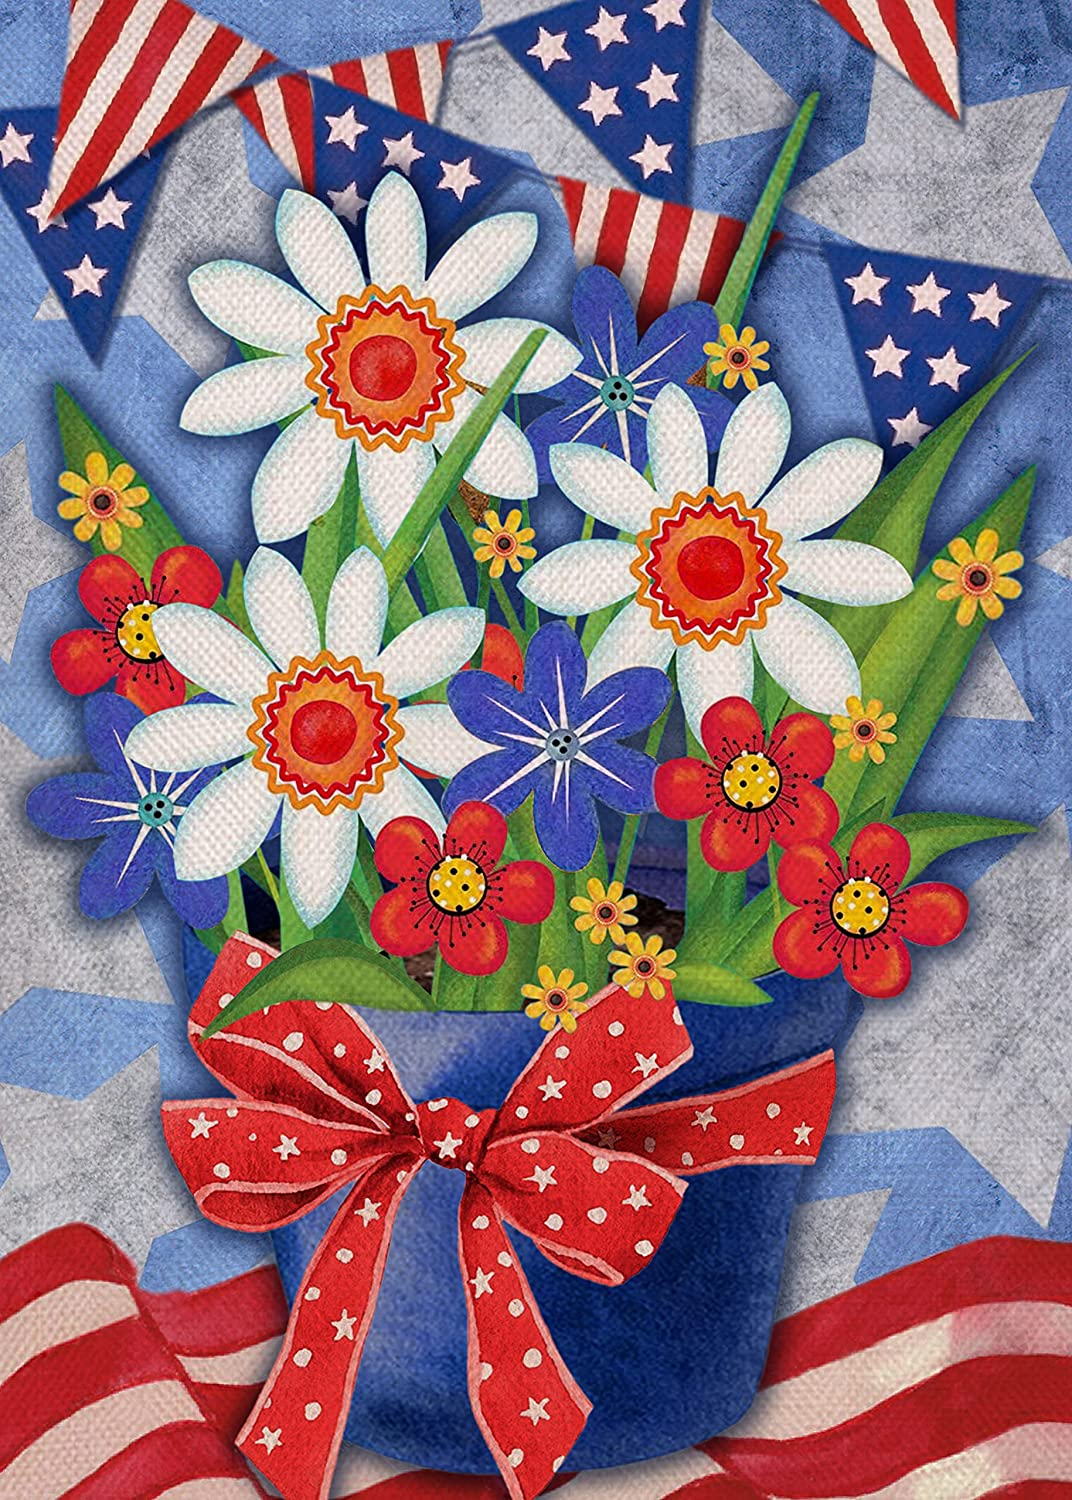 Furiaz American July 4th Garden Flag, House Yard Decorative Small Flag Summer Daisy Stars Stripes Home Outside Red White Blue Flower Pot Decoration, USA Patriotic Outdoor Decor Flag Double Sided 12x18